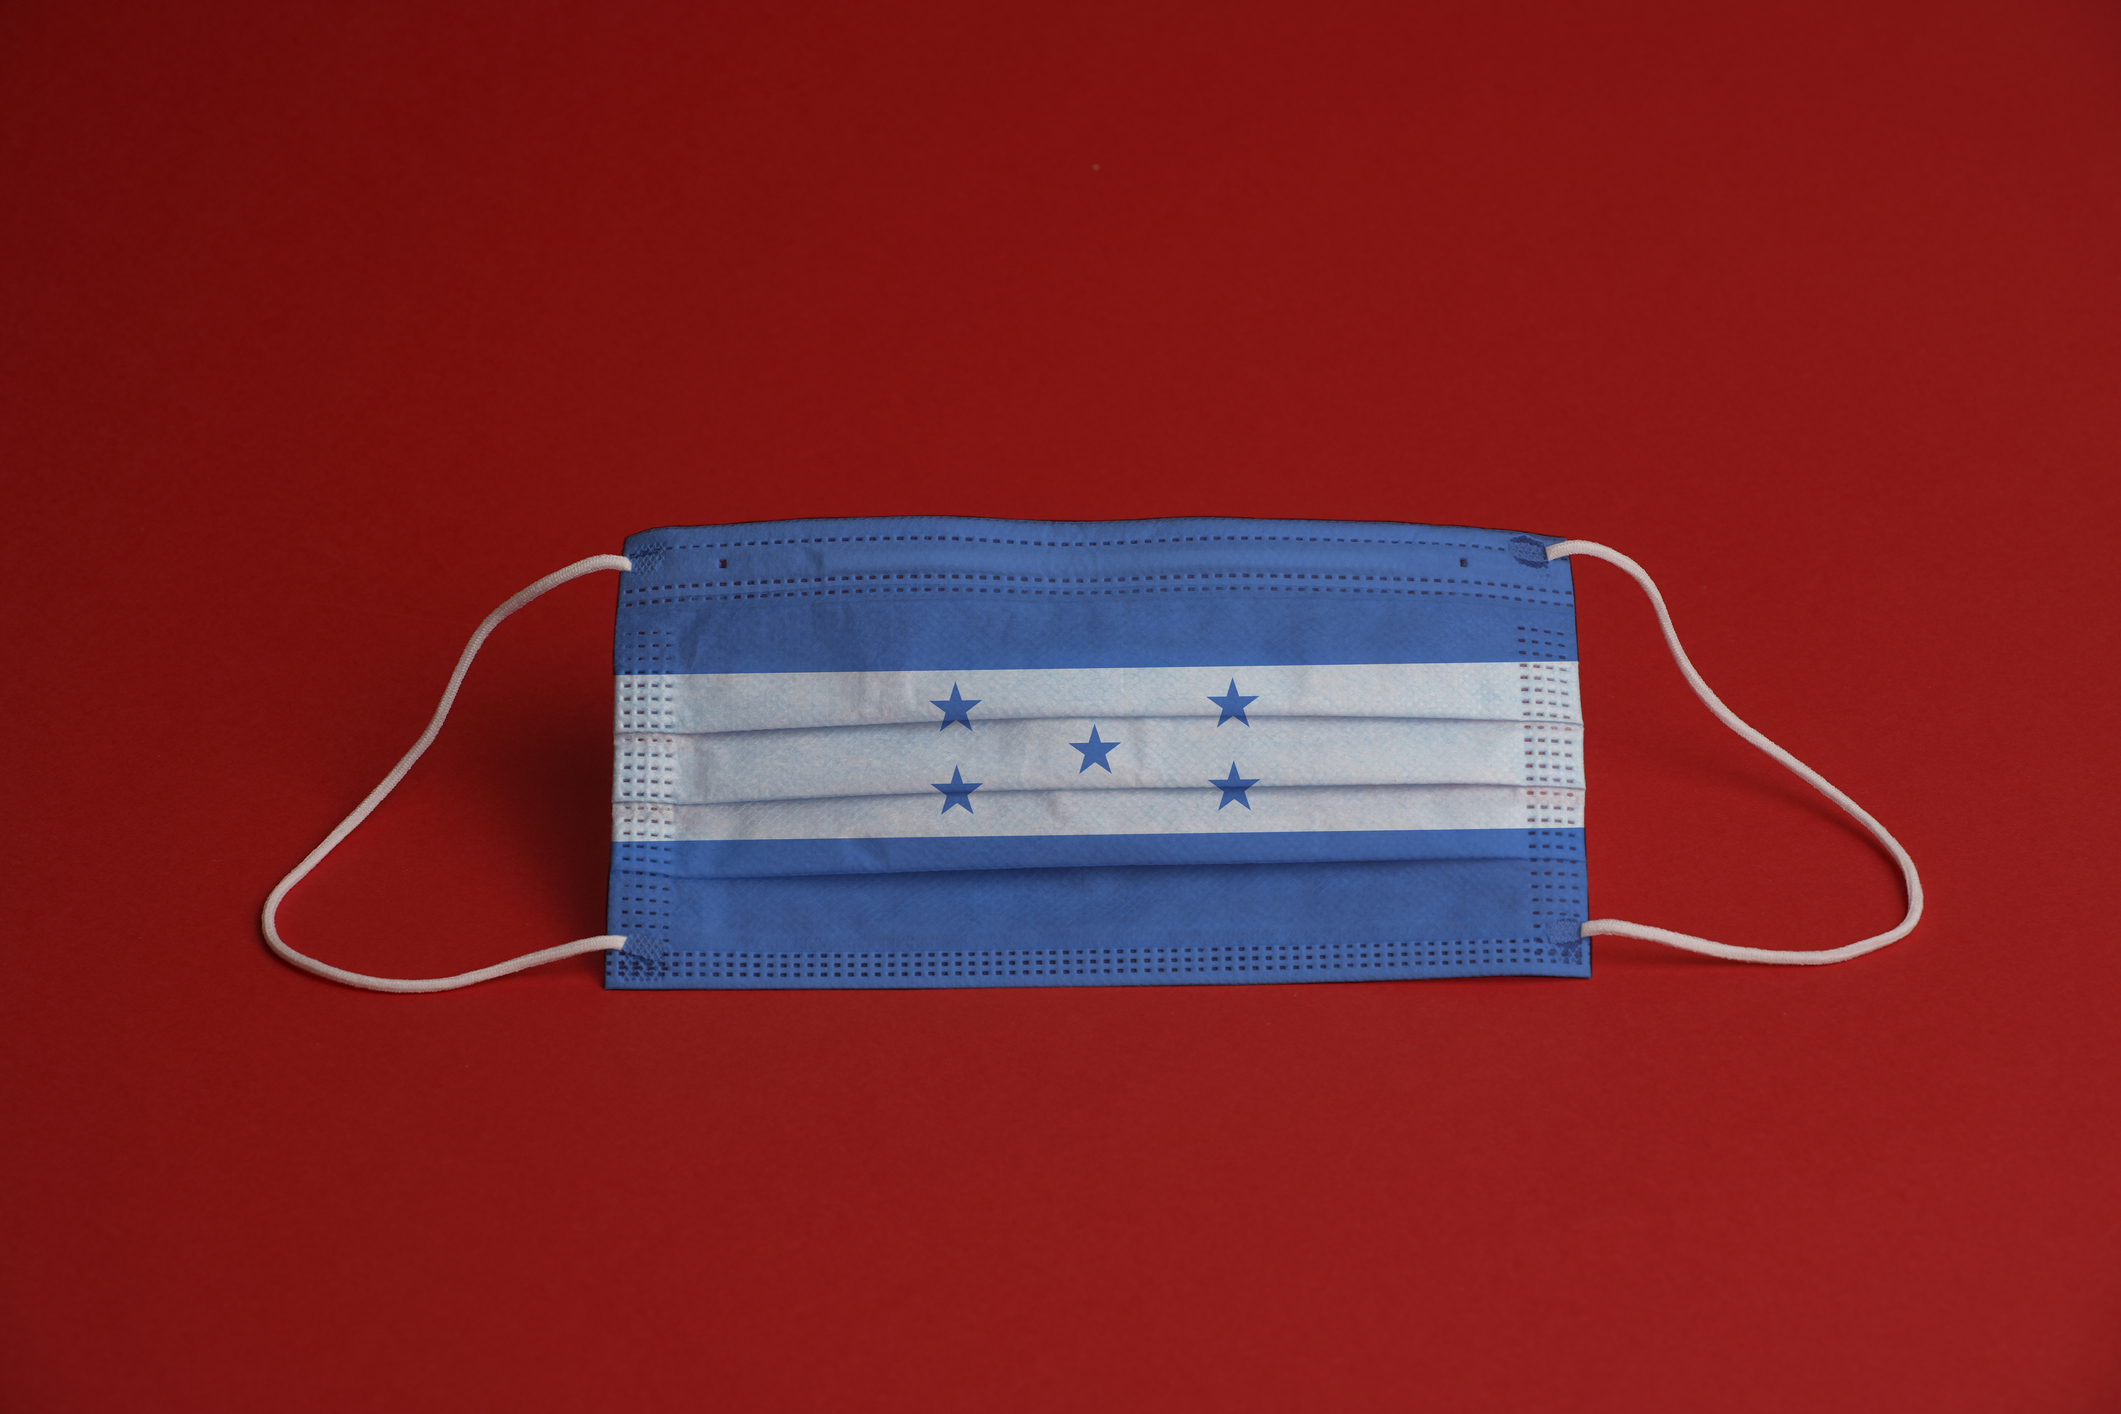 Medical mask with the Honduras flag on it. Image credit: iStock